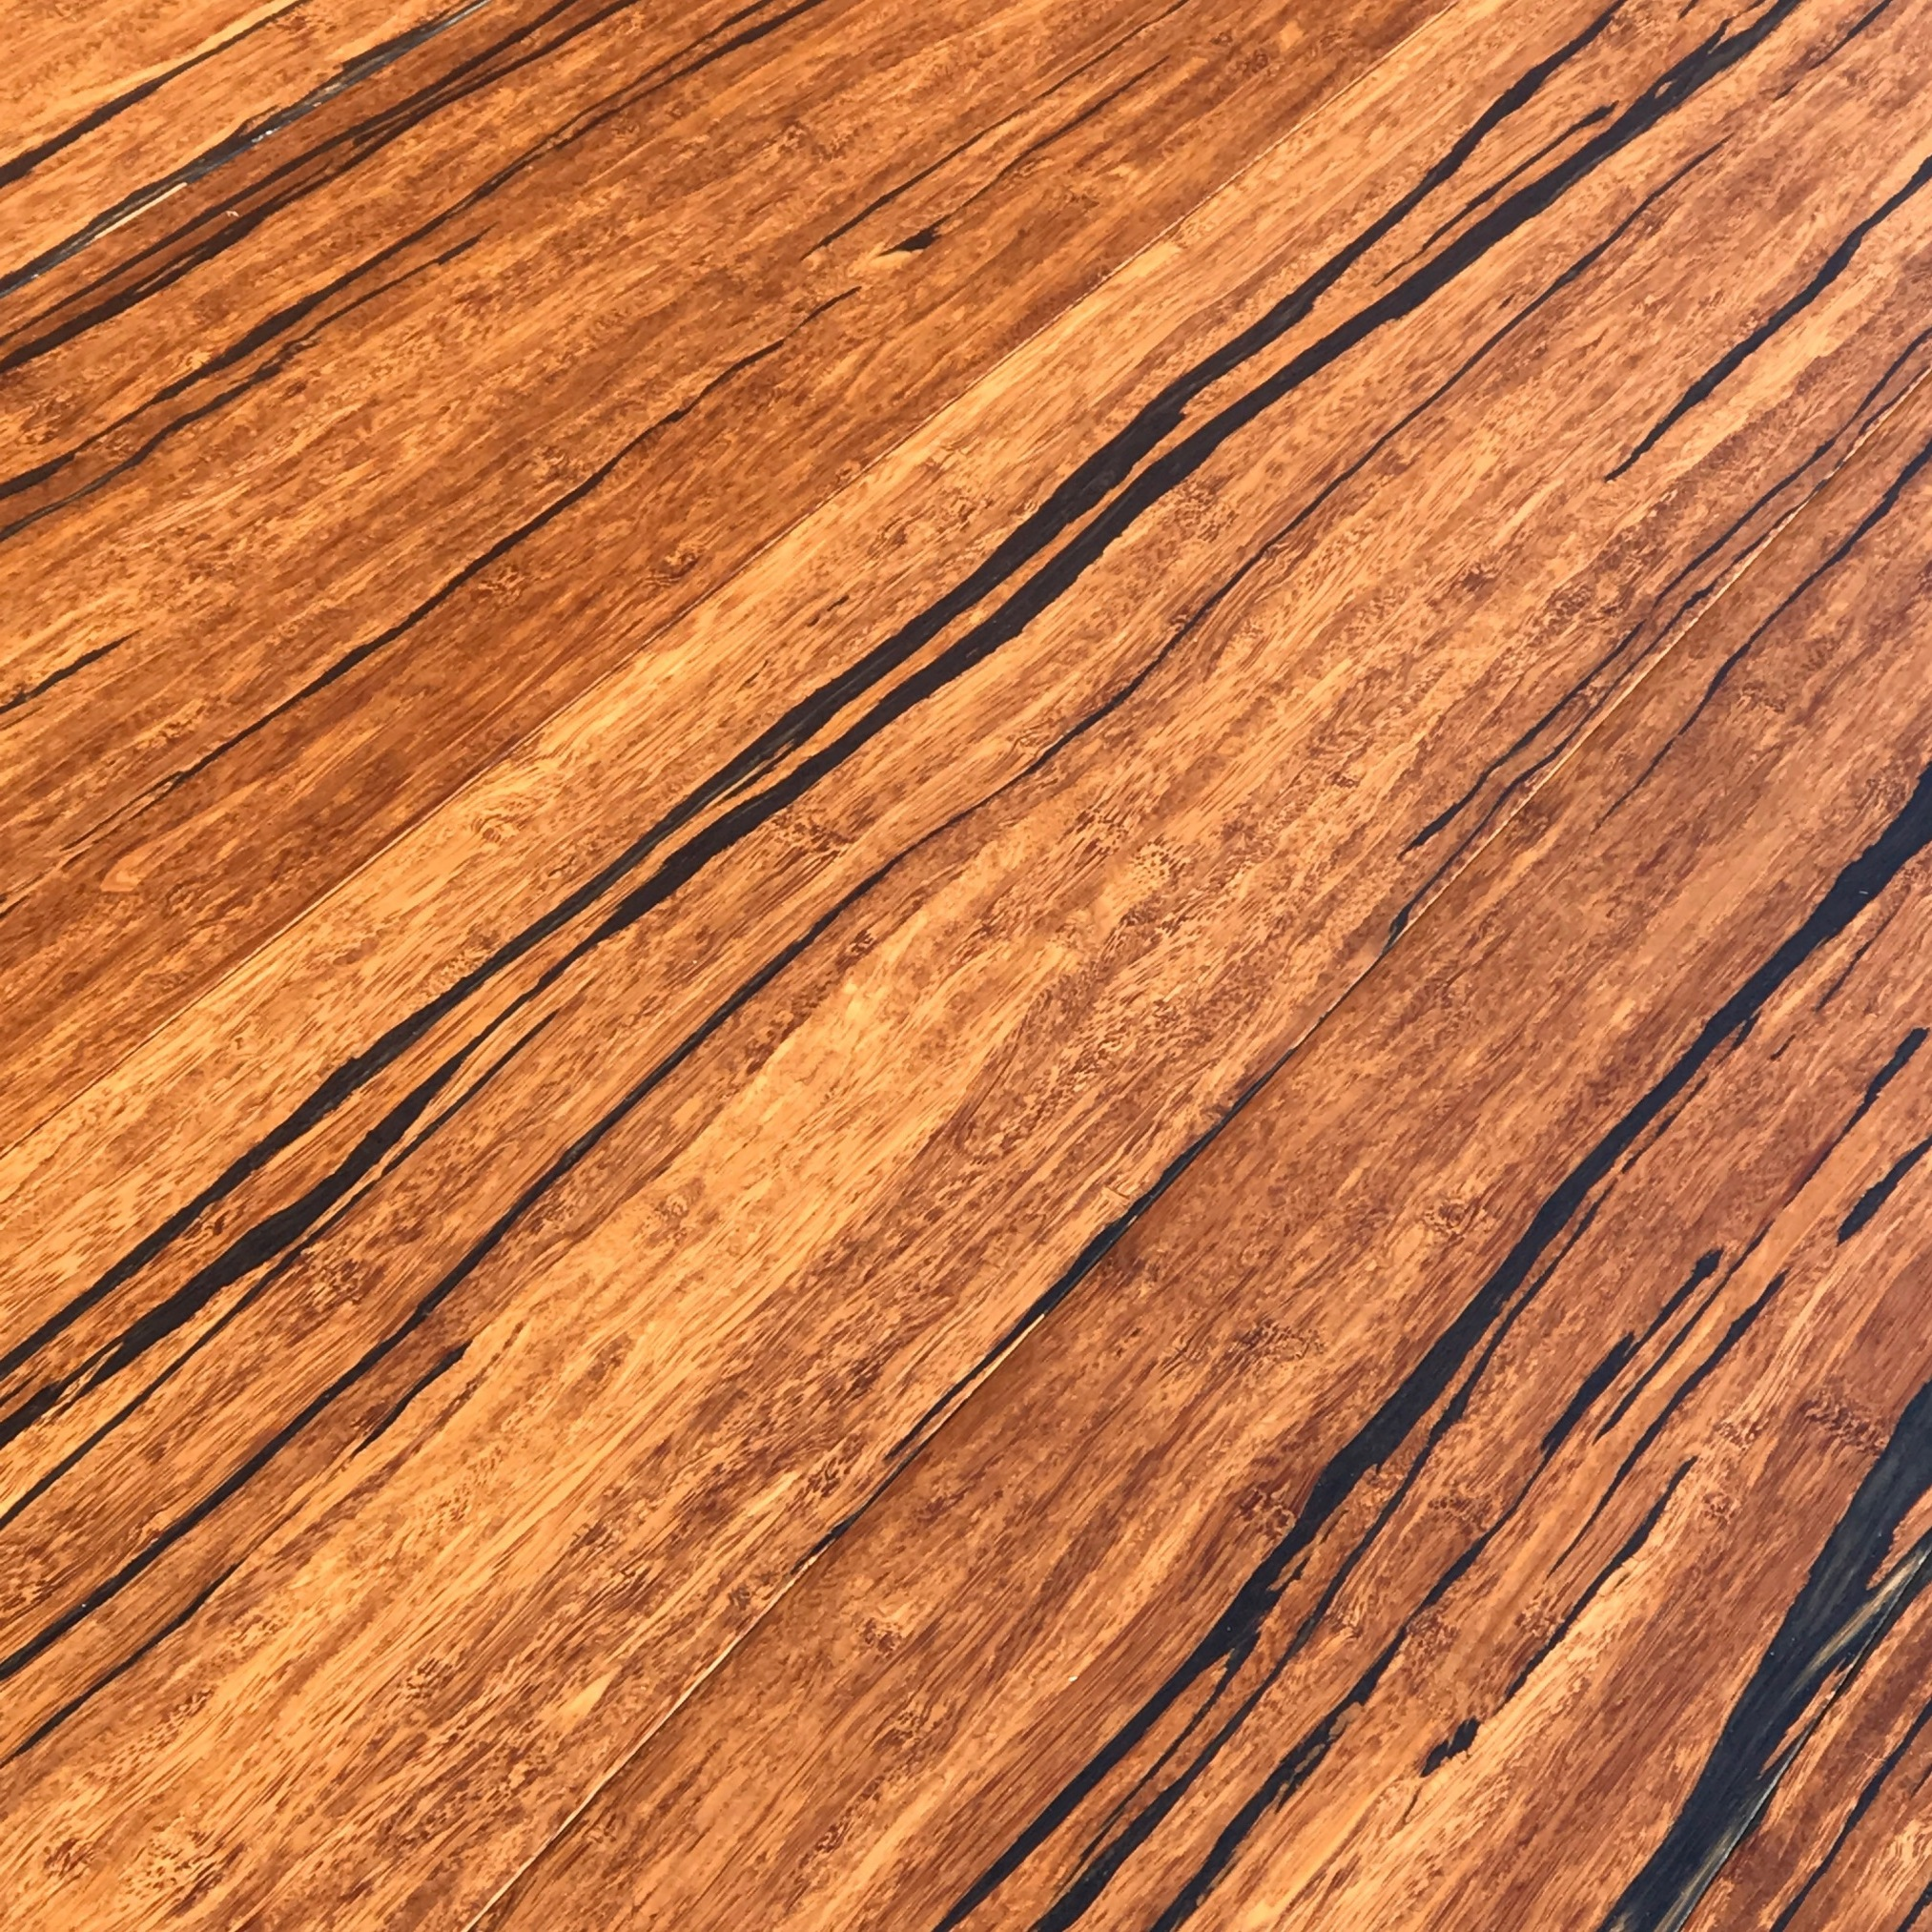 Bamboo Flooring Minneapolis St Paul MN